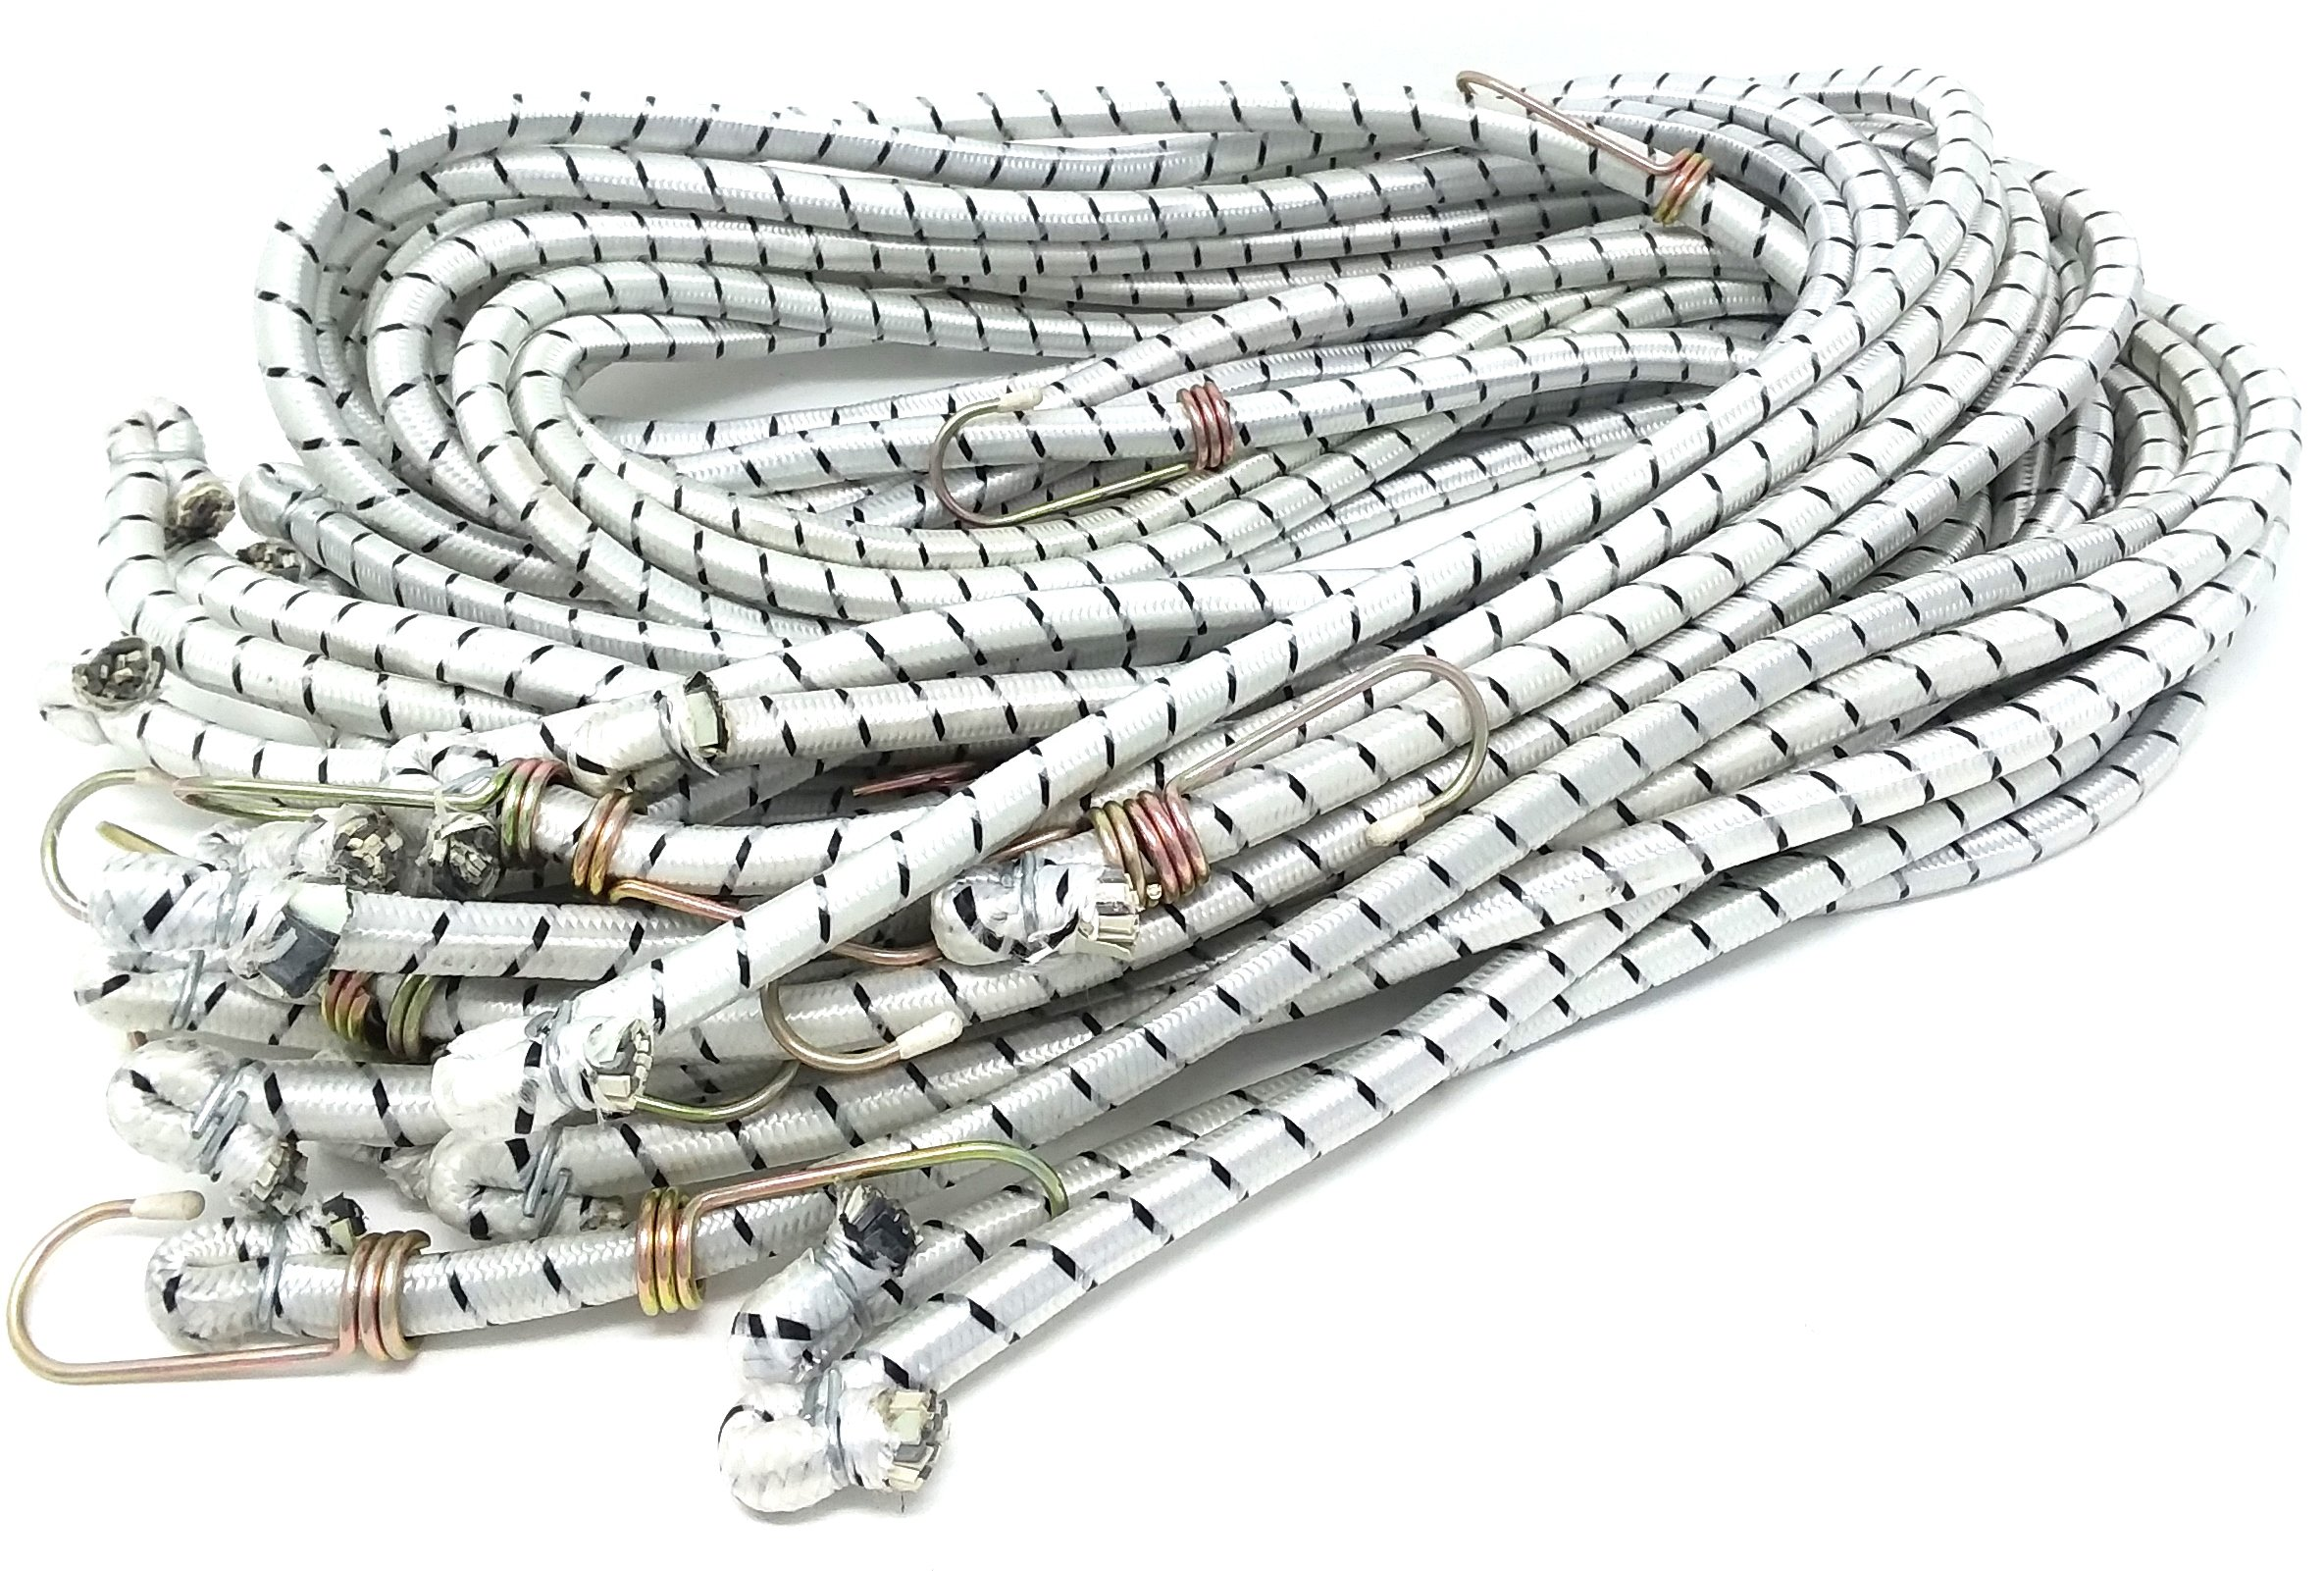 12 72 Inch X 1/2'' Diameter (6Ft) HEAVY DUTY Bungee Stretch Cords With Heat-treated Zinc Plated Strong HOOKS & High Extension Inside Rubber Core CARS, TRUCKS, RV'S, TRAVEL, STORAGE WHOLESALE BULK LOT by Chachlili